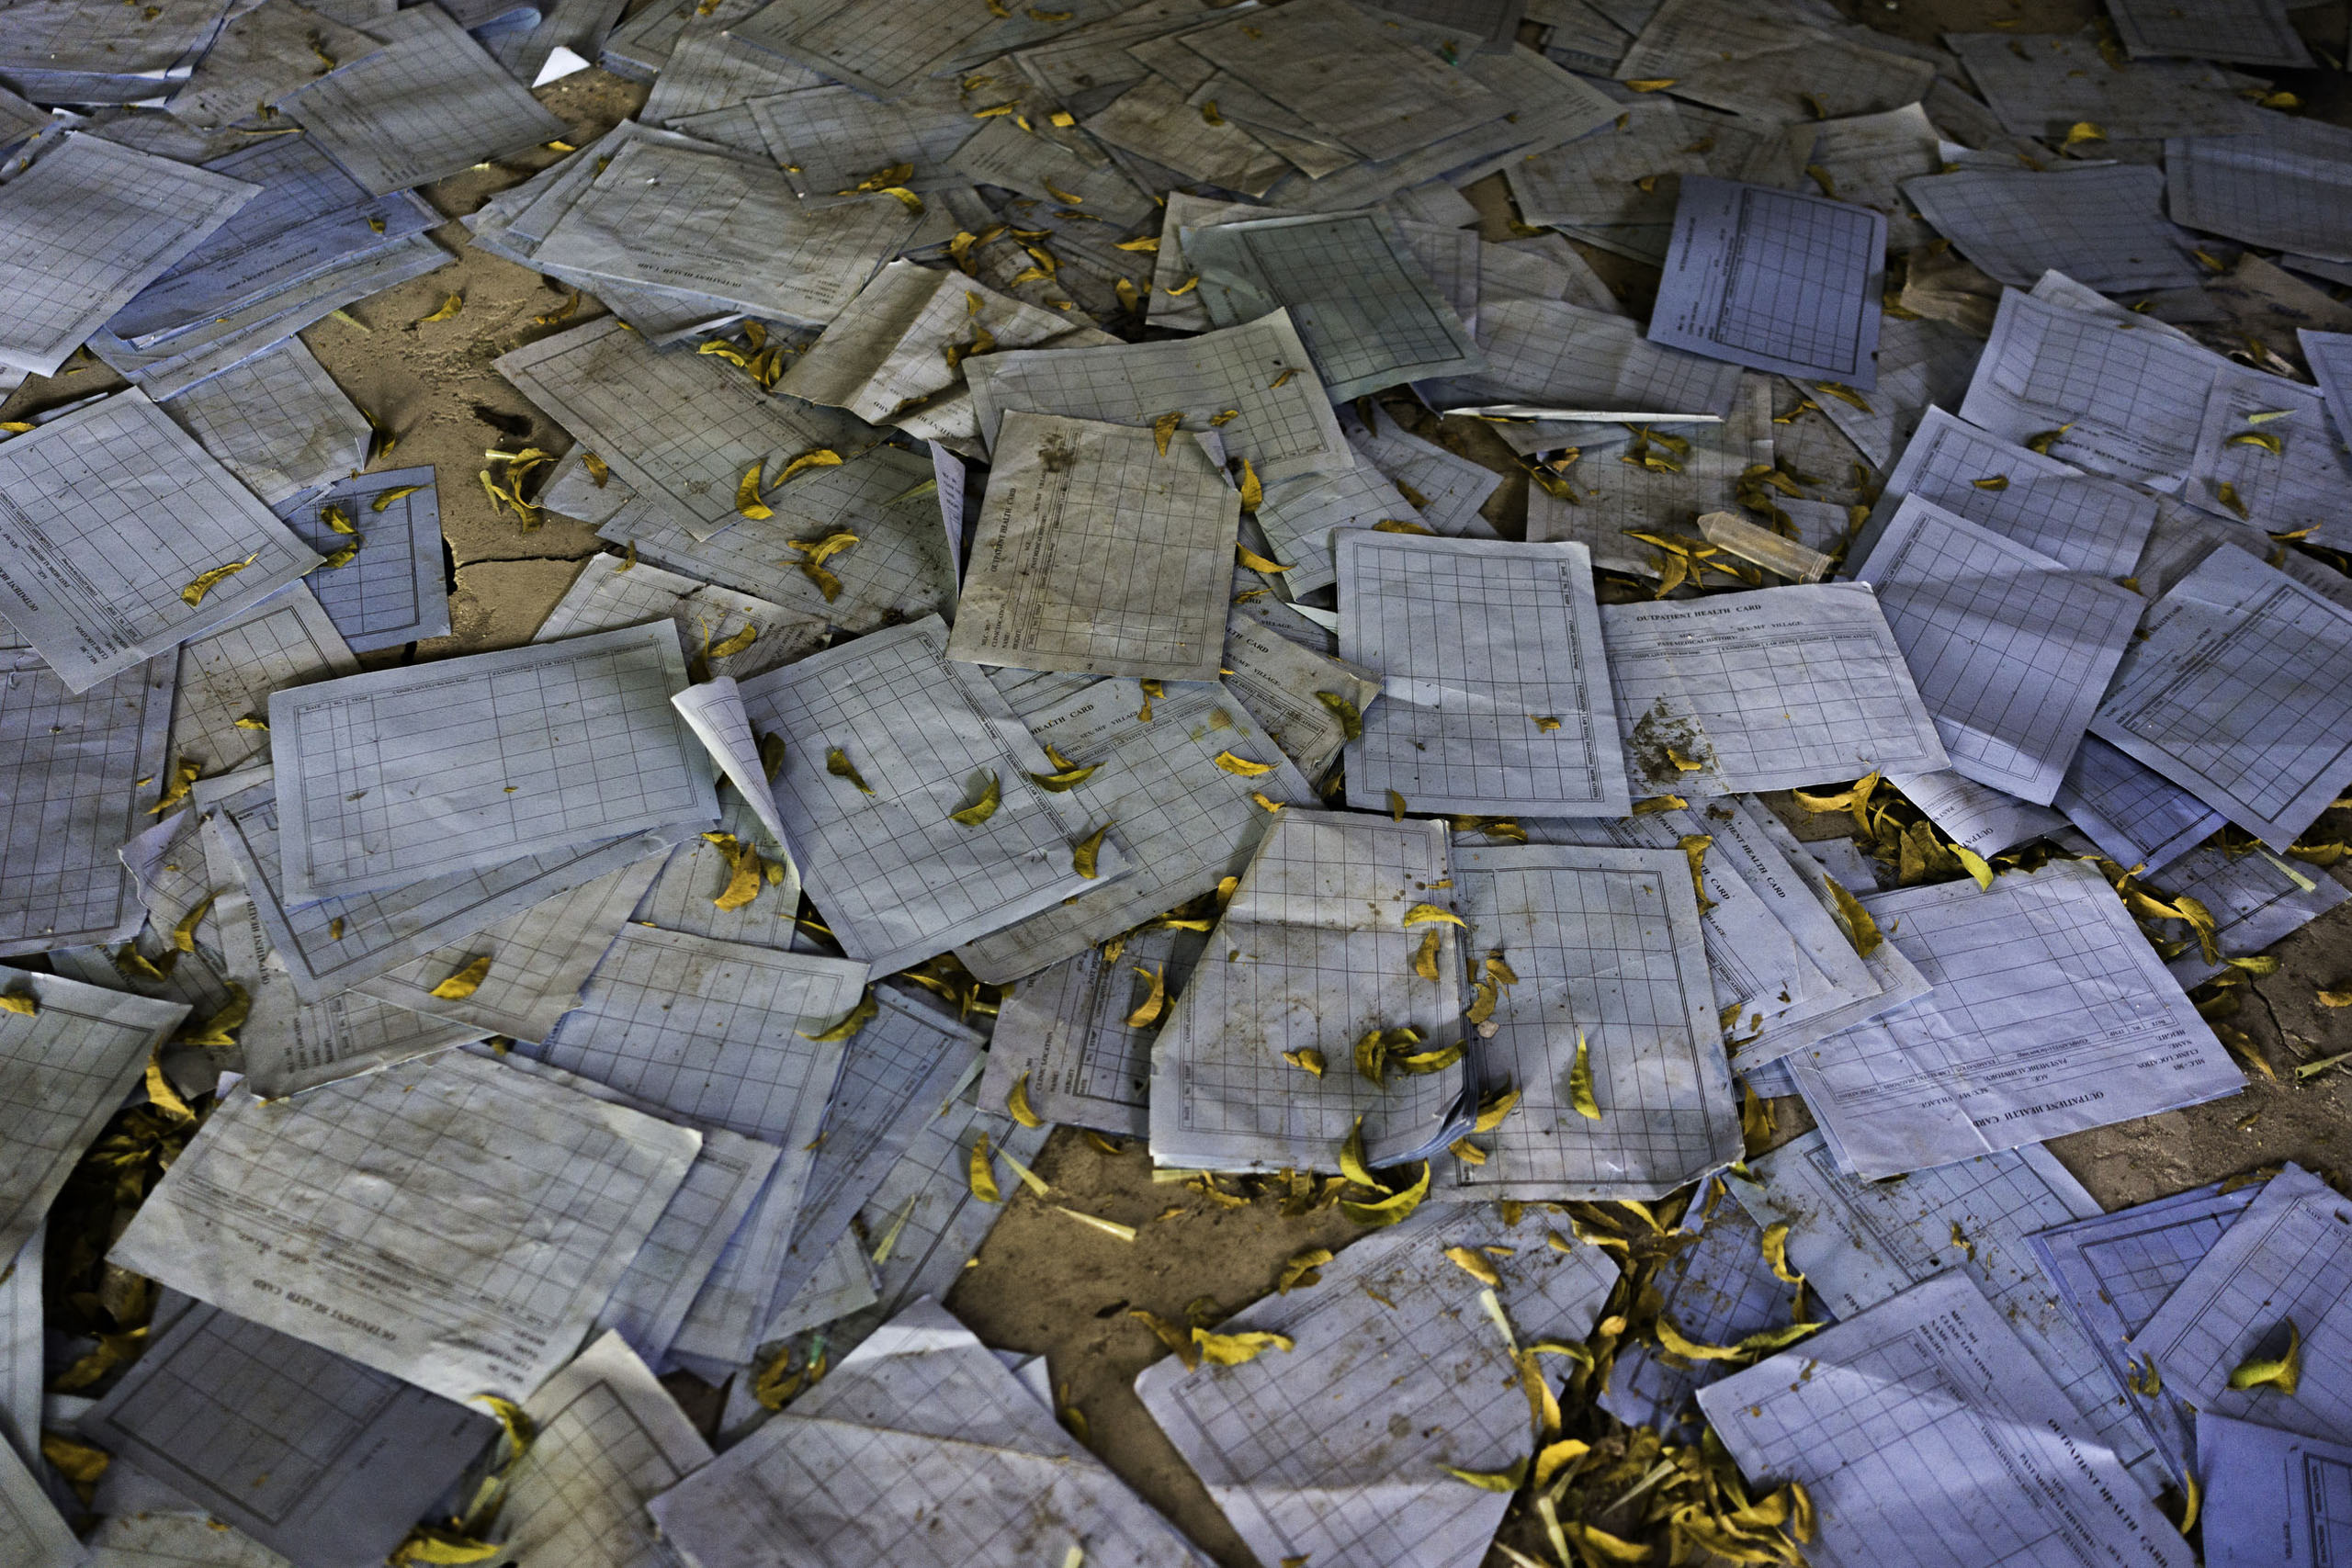 Medical charts are scattered on the ground inside the looted and abandoned Doctors Without Borders hospital in Leer, Unity State, South Sudan.